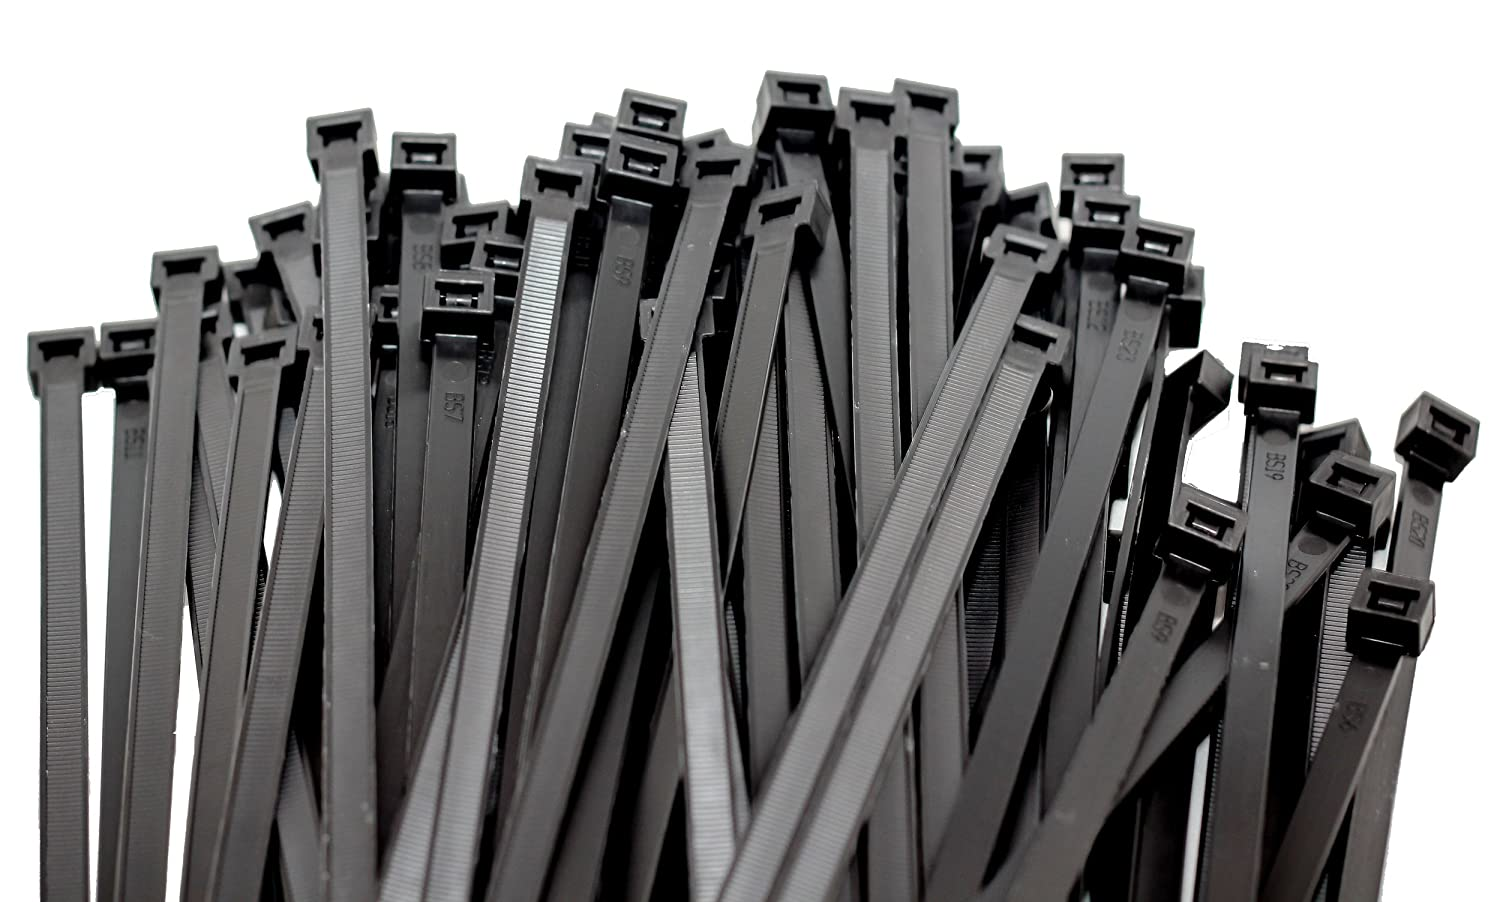 100 Pack Heavy-Duty Cable Ties 15 Inch , Black Nylon Premium Zip Ties for Cable Management